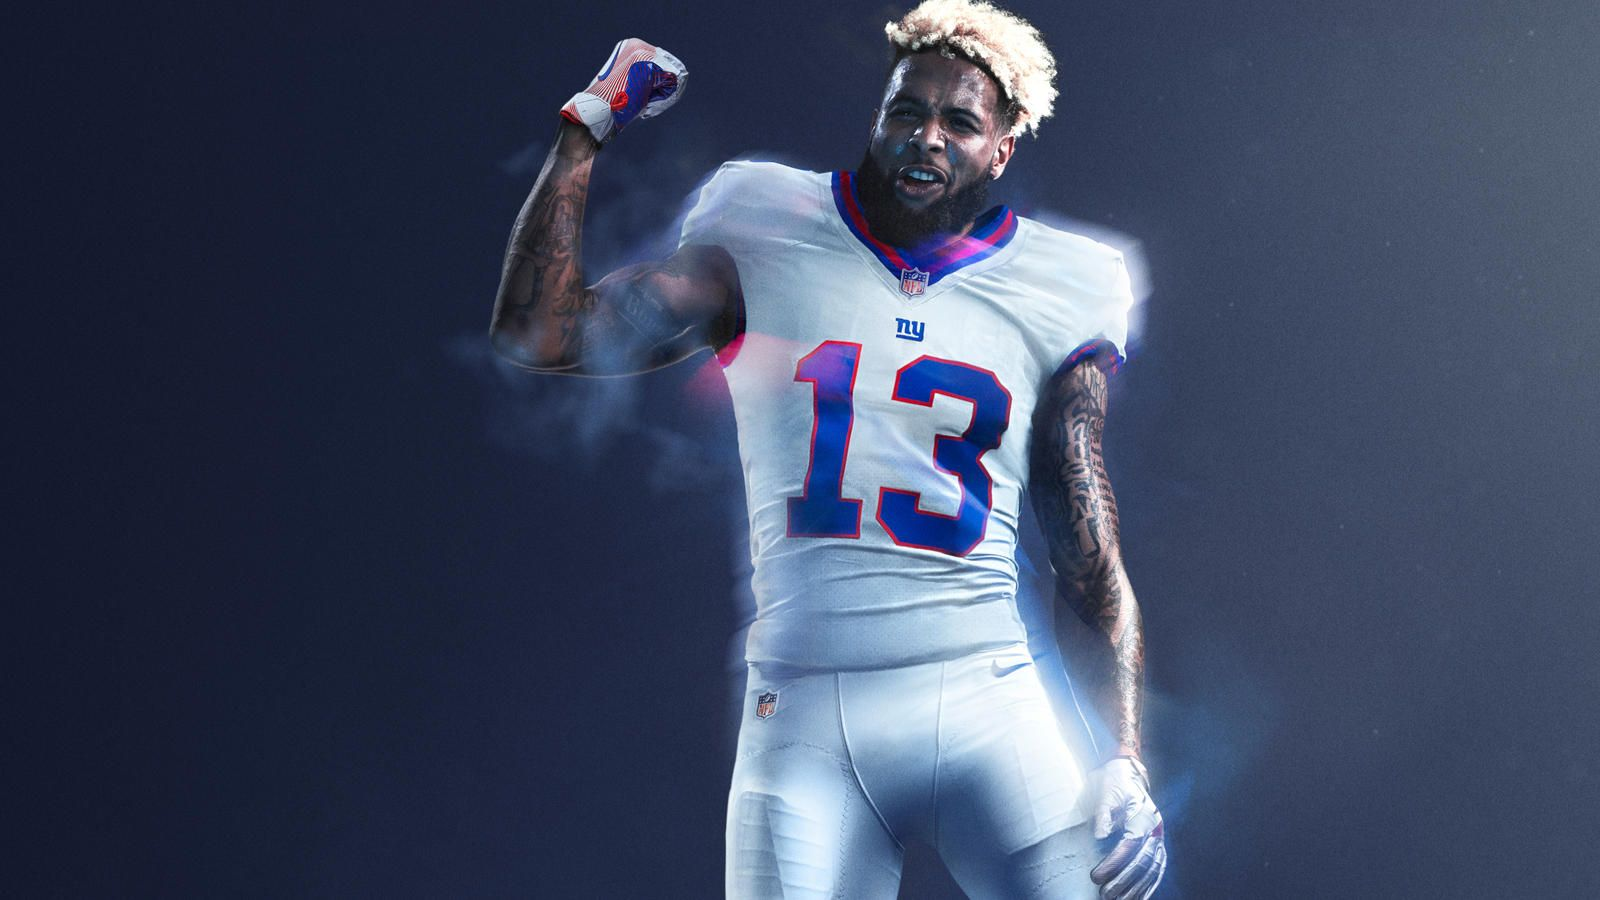 Nike And Nfl Light Up Thursday Night Football Nfl Color Rush Uniforms Color Rush Uniforms Odell Beckham Jr